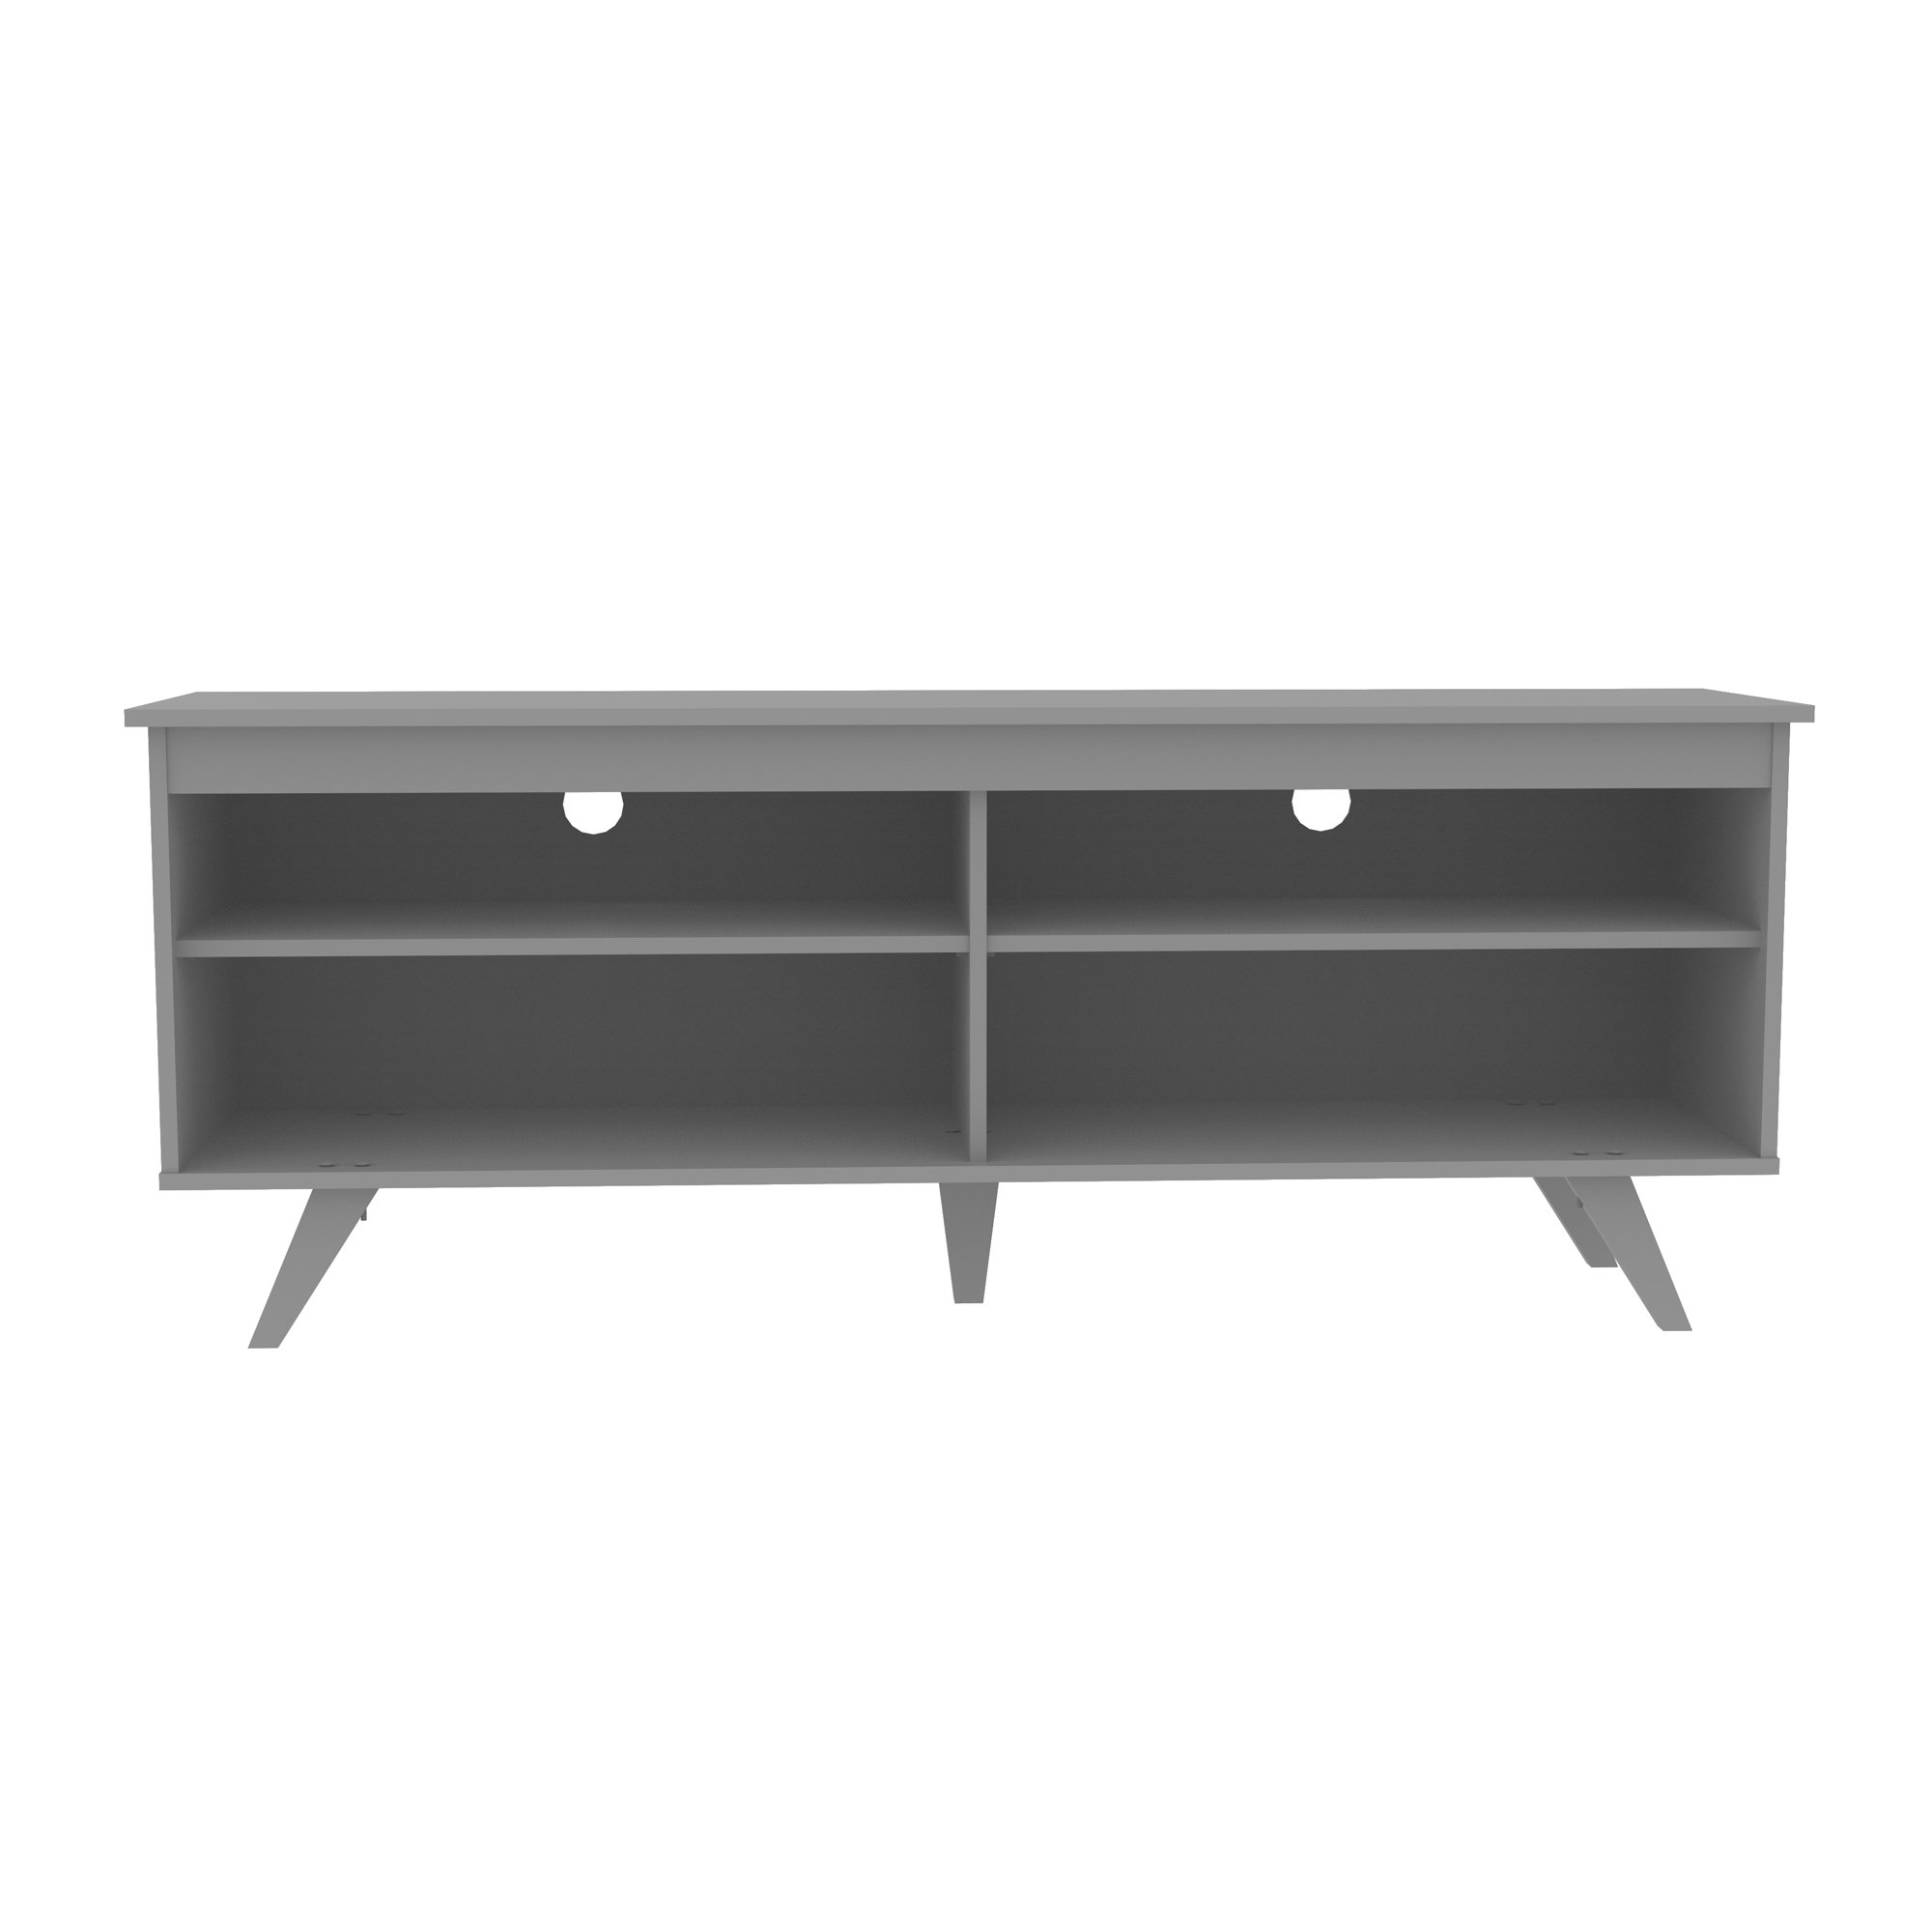 Modern Grey Tv Stands | Allmodern For Sinclair Grey 68 Inch Tv Stands (View 15 of 30)